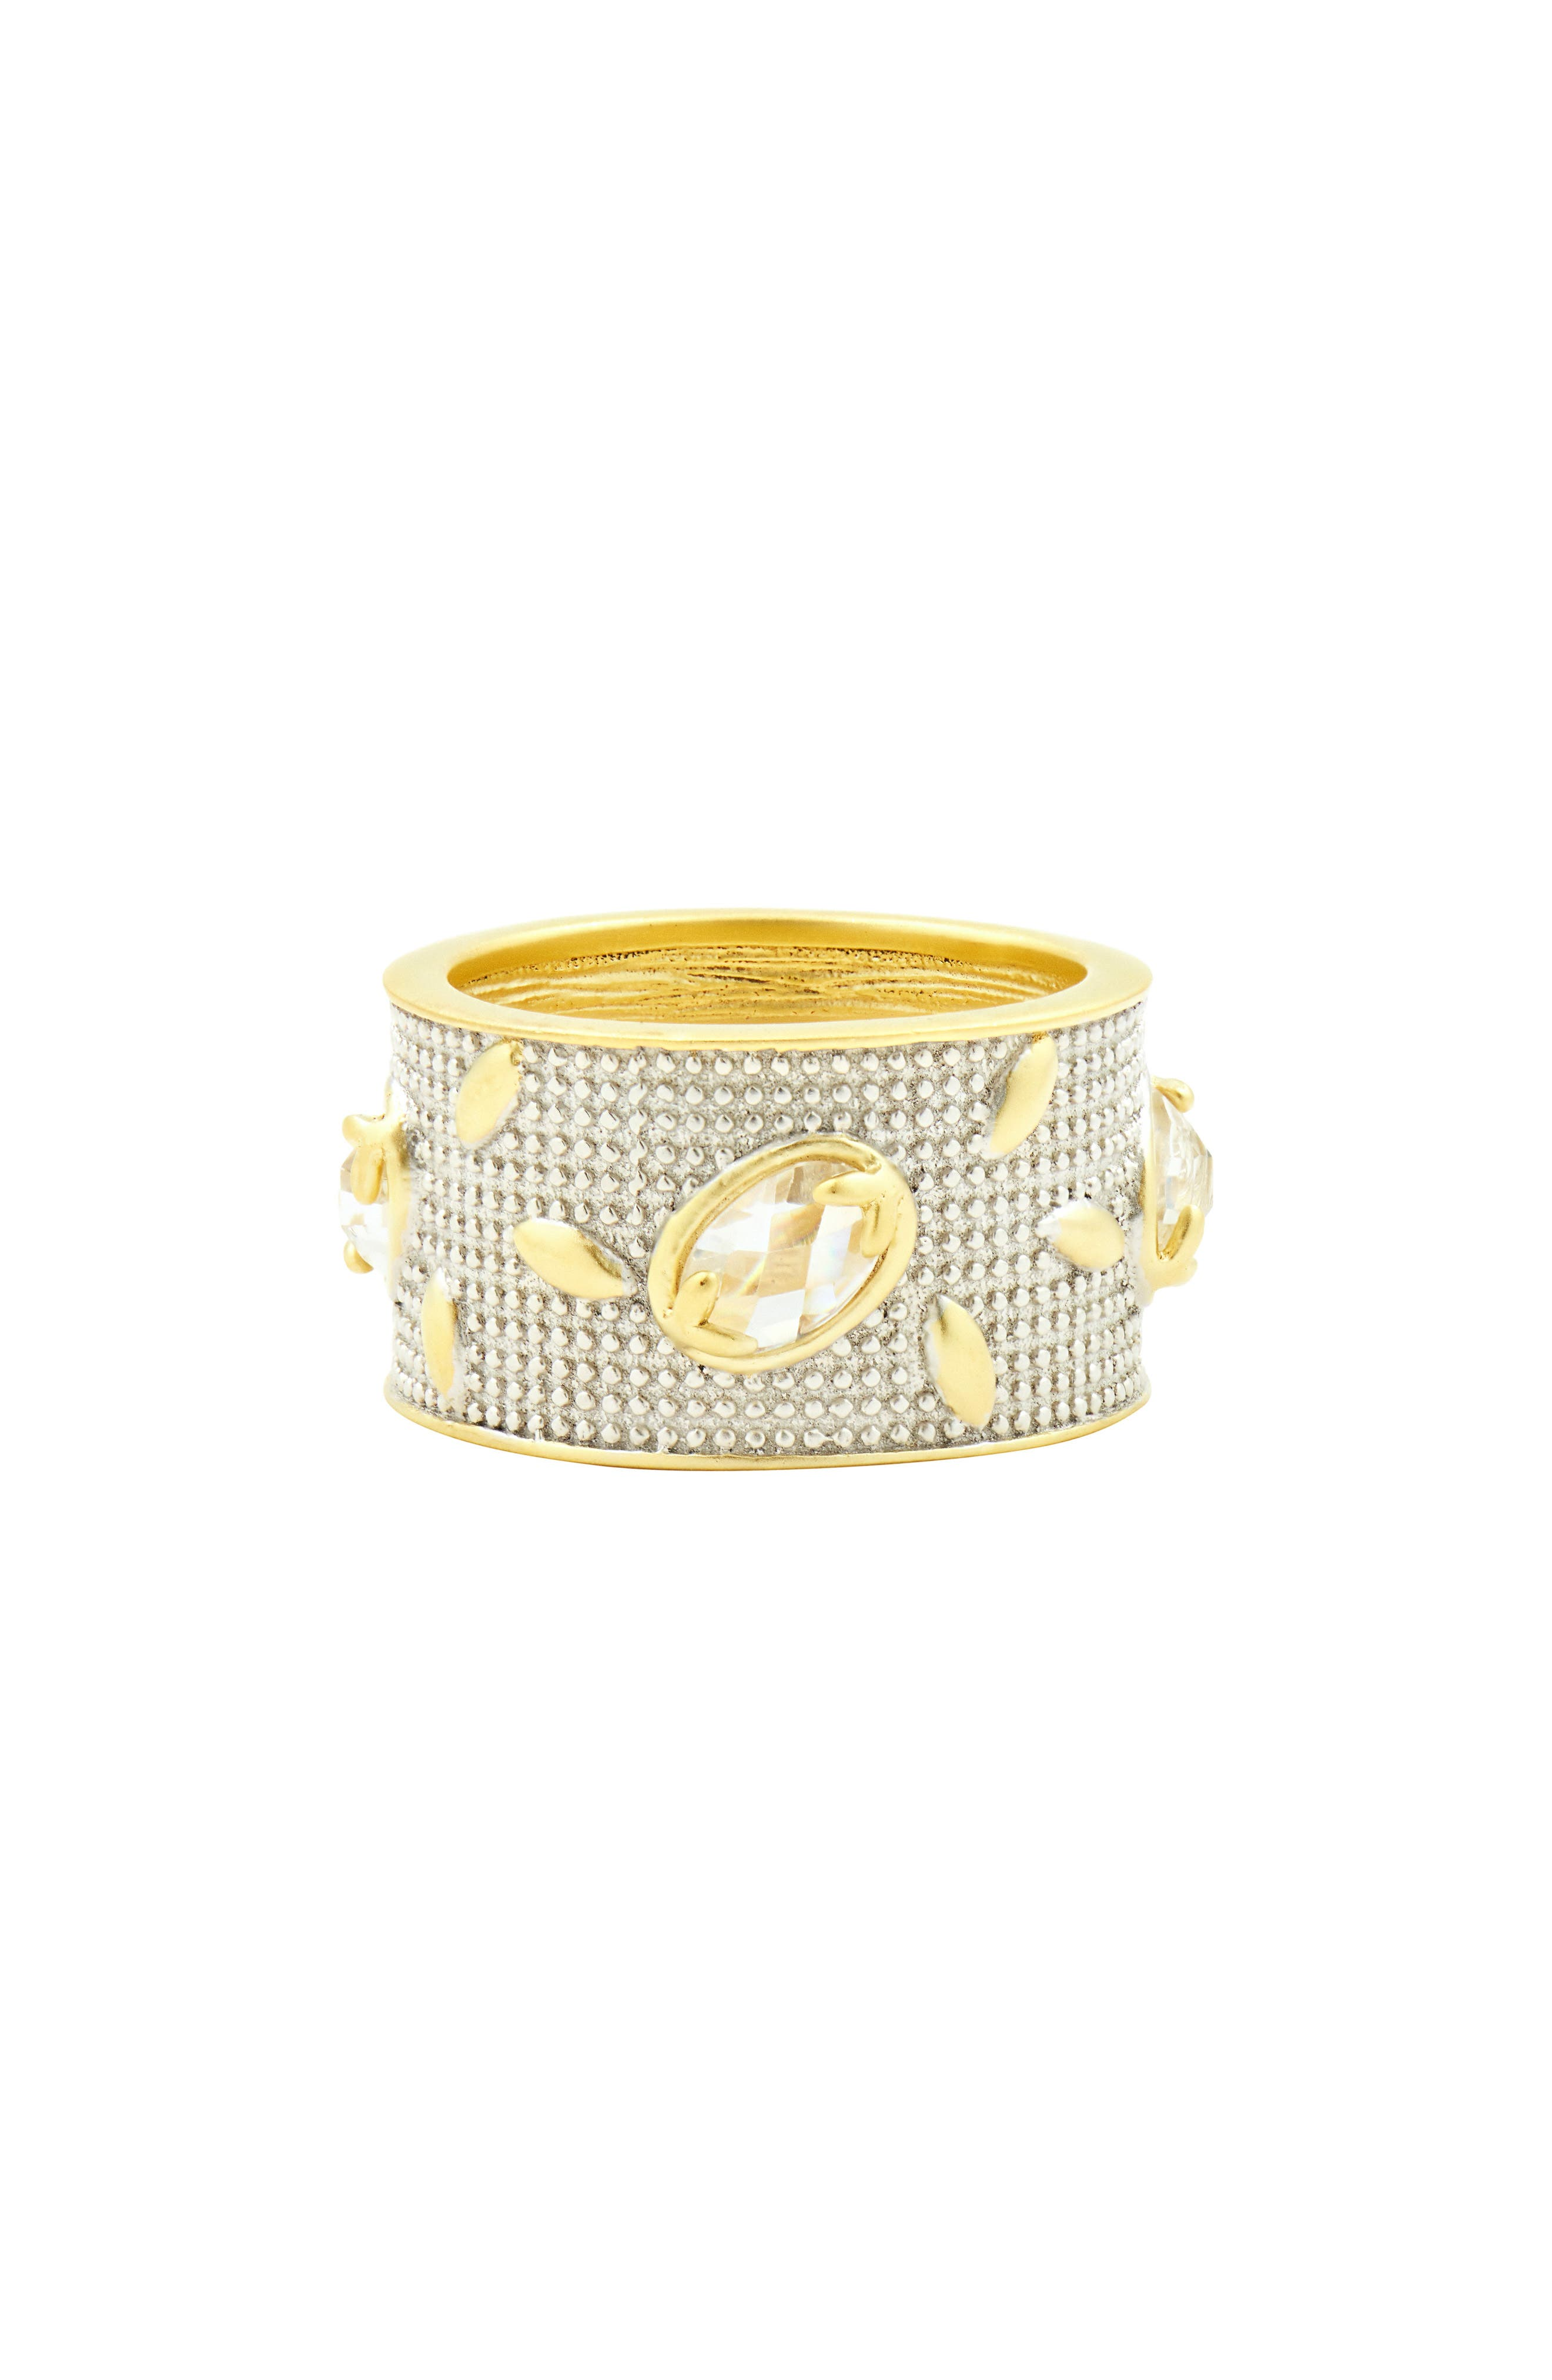 Fleur Bloom Wide Band Ring,                         Main,                         color, SILVER AND GOLD